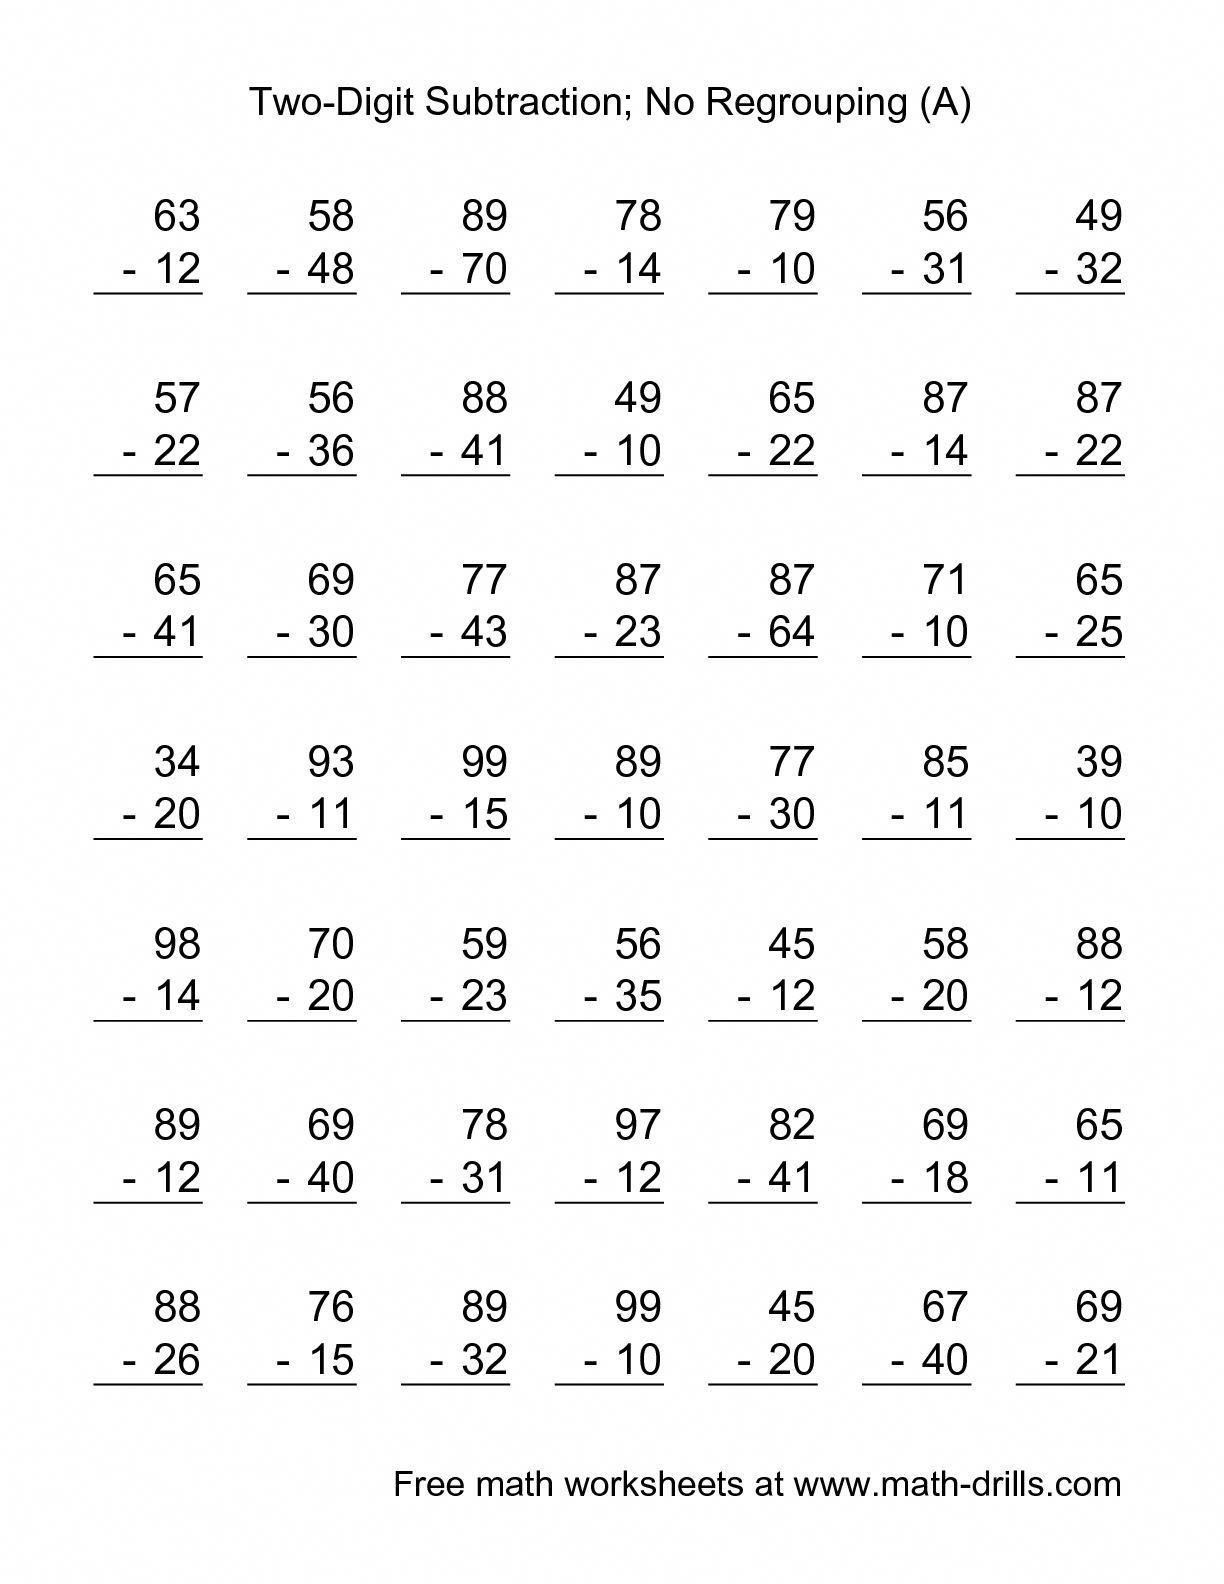 3 Double Digit Subtraction With Regrouping The Two Digit Subtraction With No Re In 2020 Free Printable Math Worksheets Math Fact Worksheets Math Subtraction Worksheets [ 1584 x 1224 Pixel ]